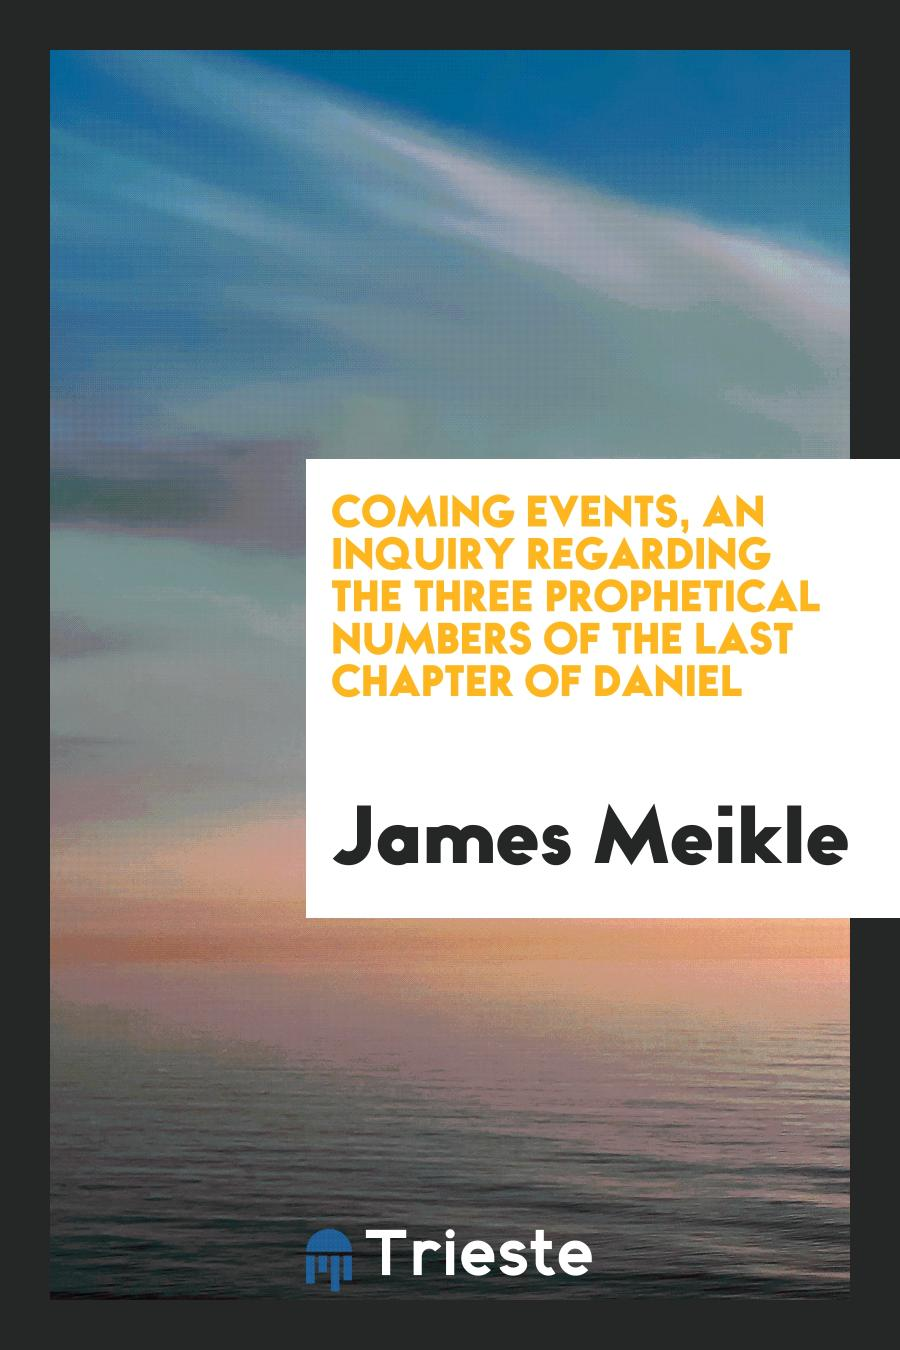 Coming Events, an Inquiry regarding the Three Prophetical Numbers of the Last Chapter of Daniel